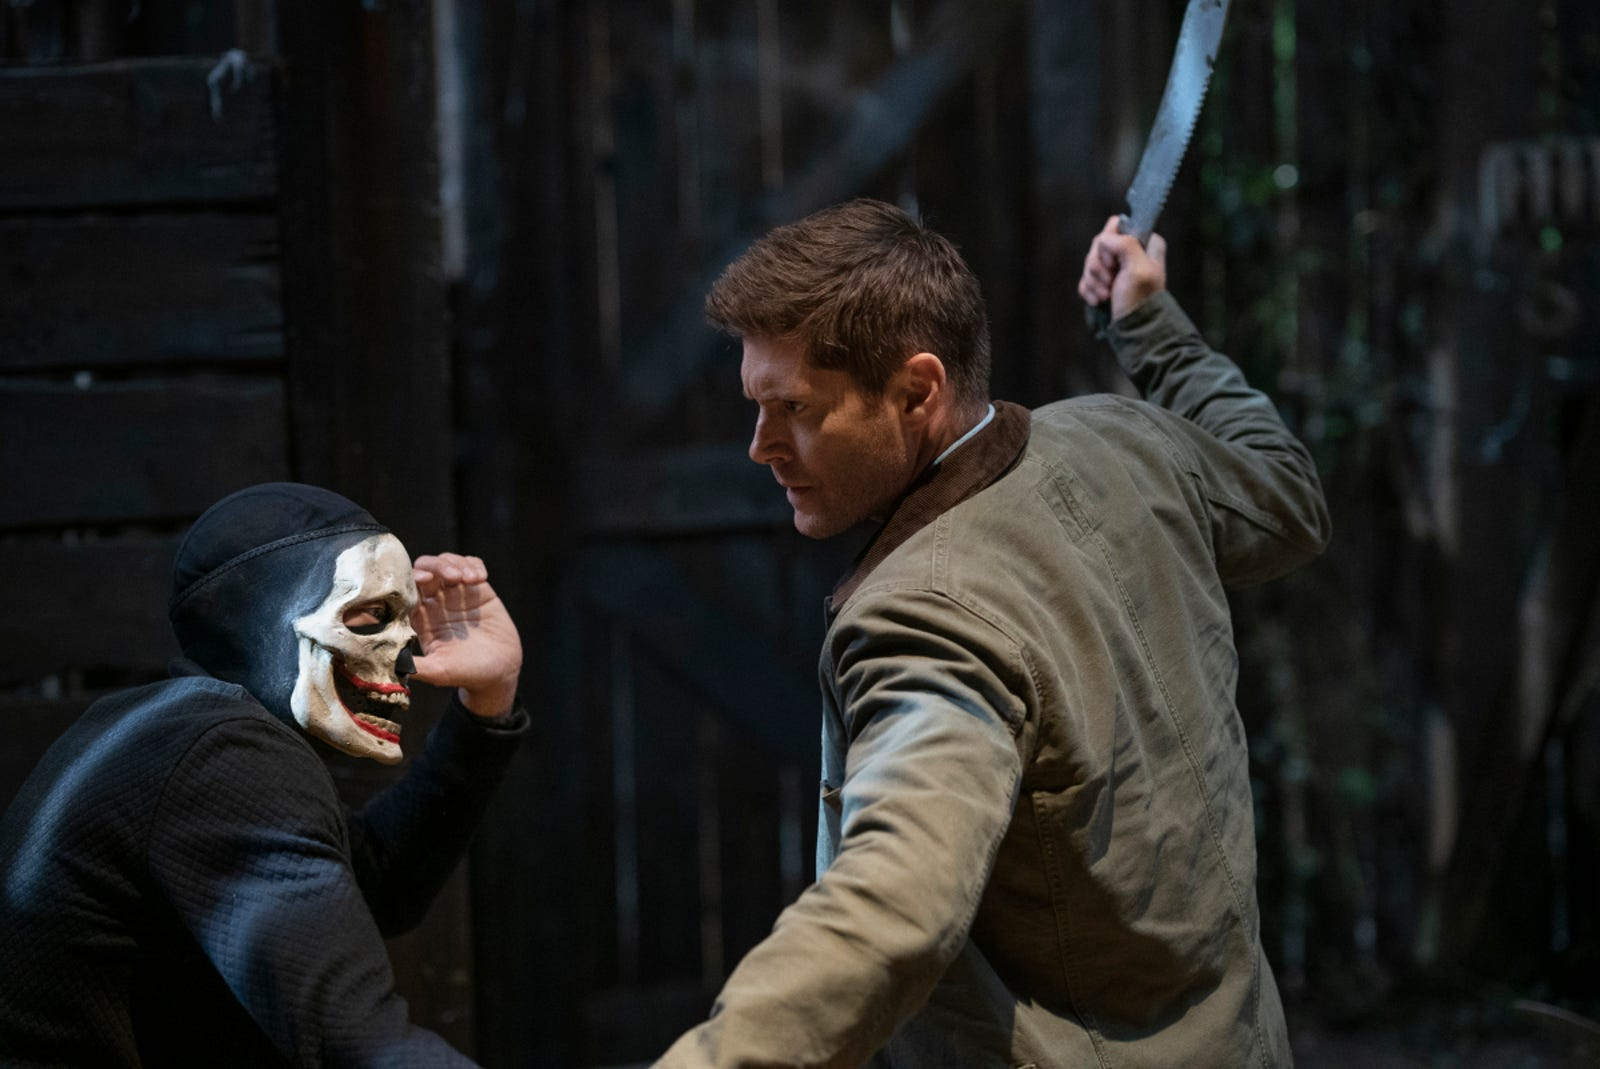 Not sure who the skull guy is but Dean's sure fighting him a bunch.